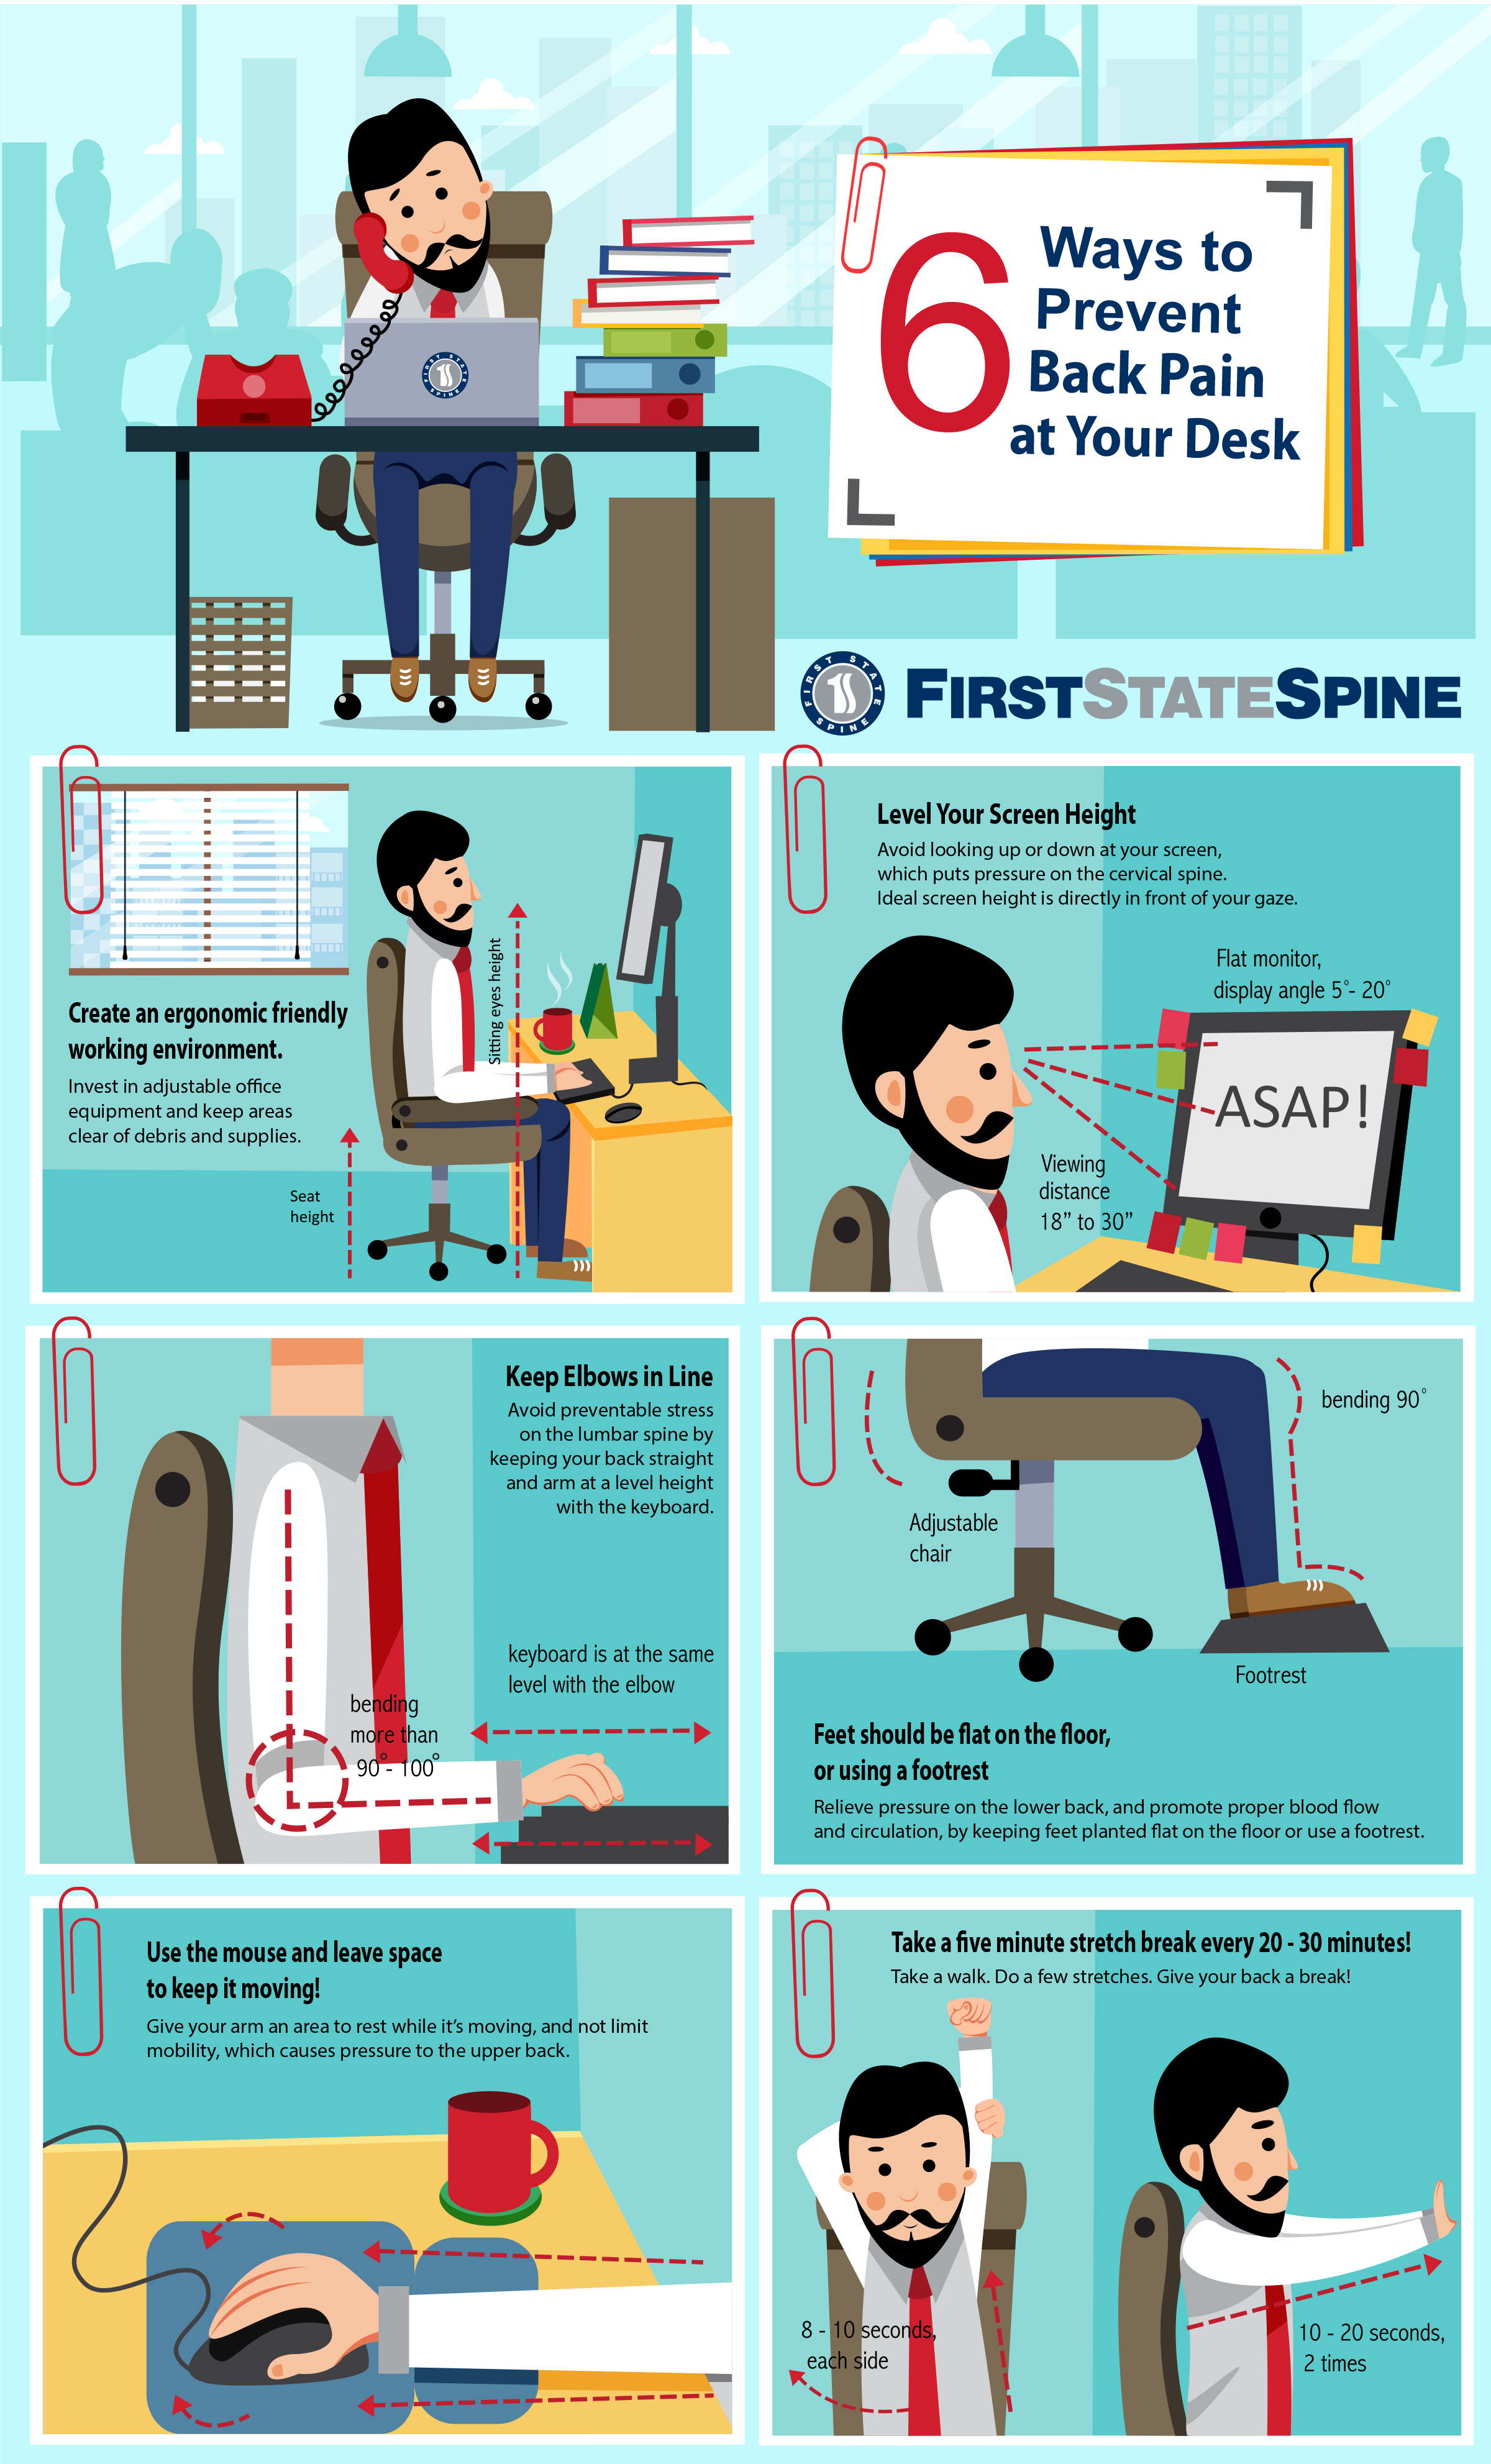 First State Spine - 6 Ways to Prevent Office Back Pain